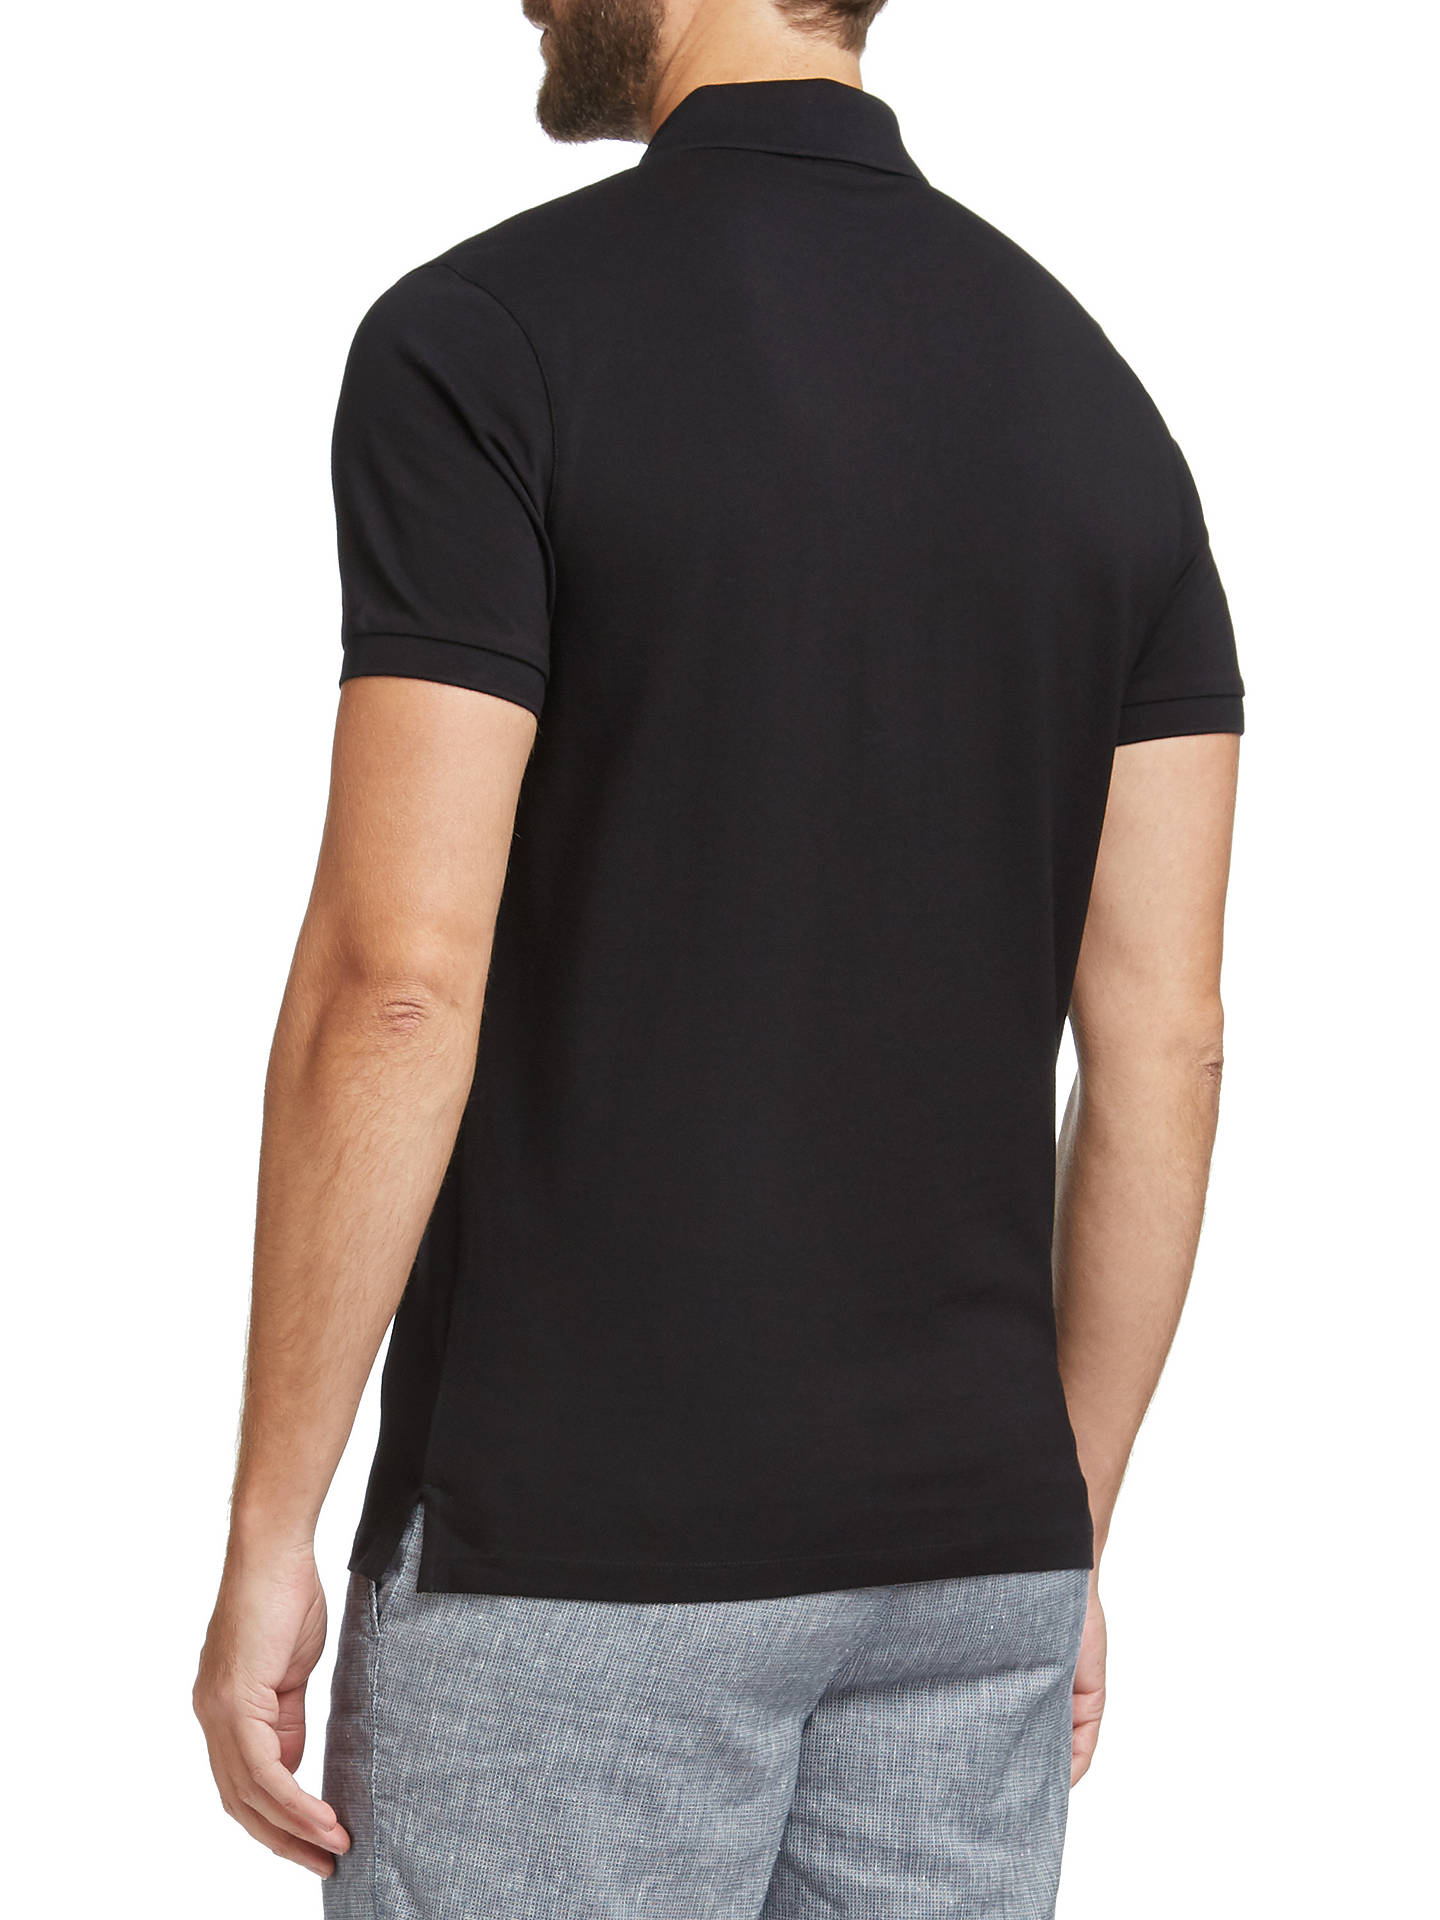 BuyBOSS Pallas Regular Fit Polo Shirt, Black, S Online at johnlewis.com